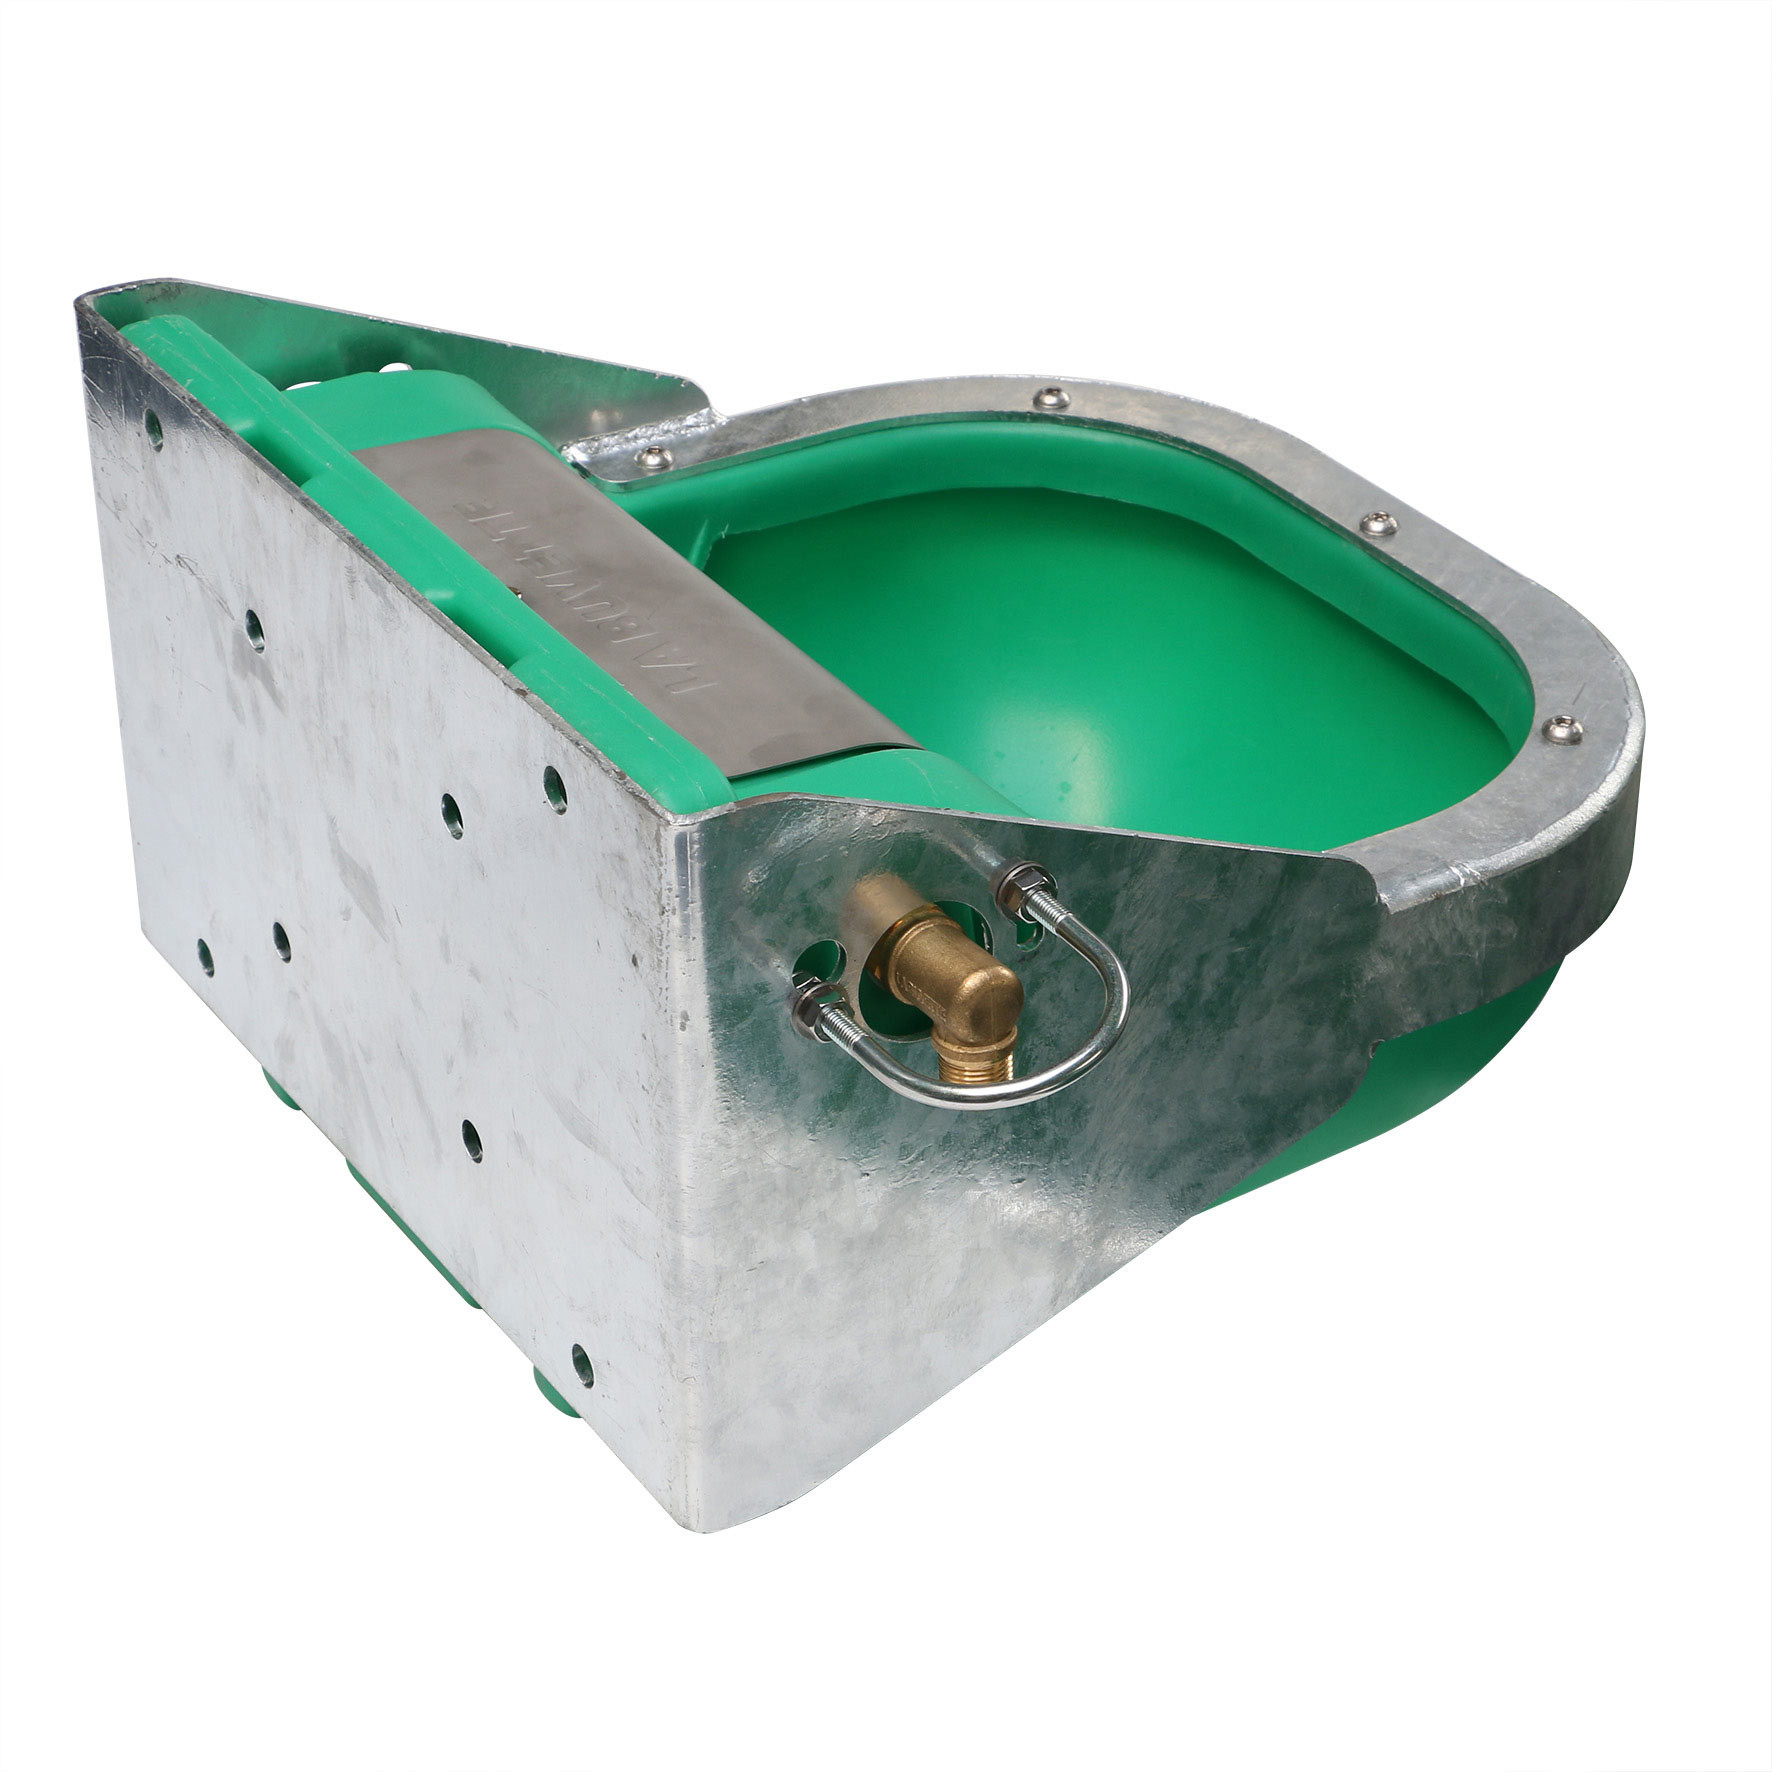 LAC50 Large drinking trough with full metal protection